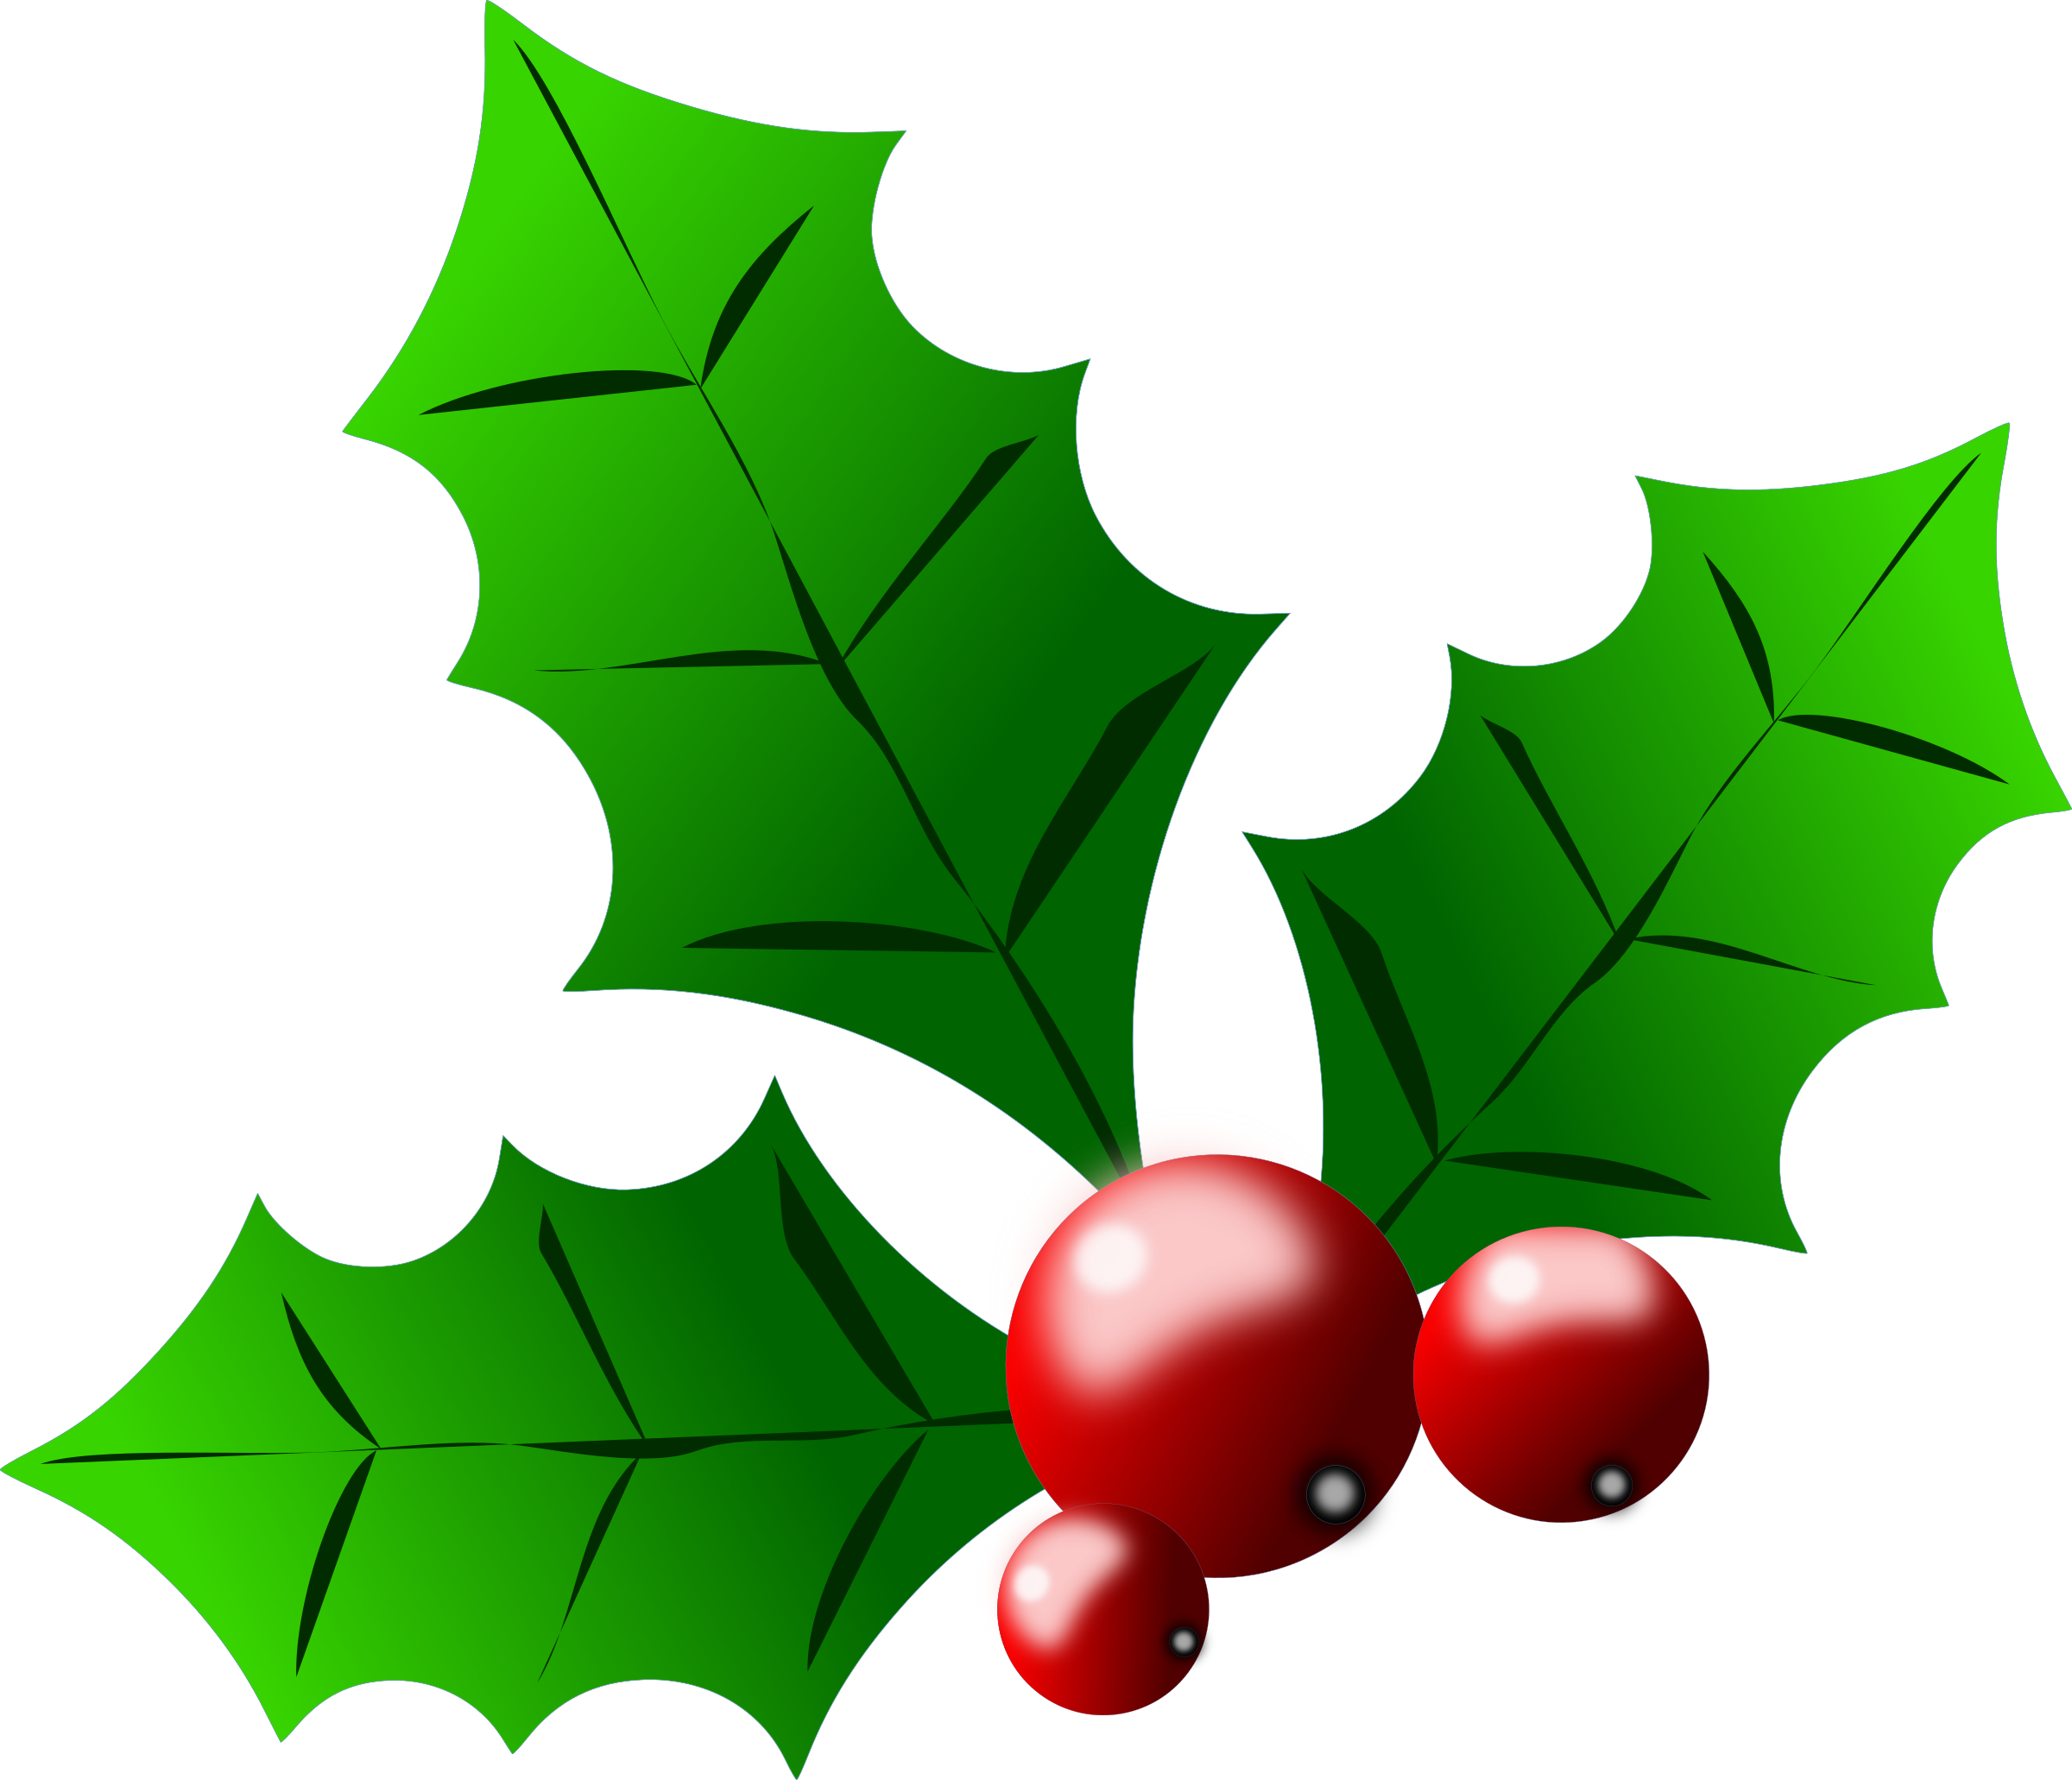 Holly Berries By Almeidah A Stylized Drawing Of Leaves And Berries Of A Holly Ideal For Graphi Christmas Clipart Free Christmas Holly Images Christmas Holly